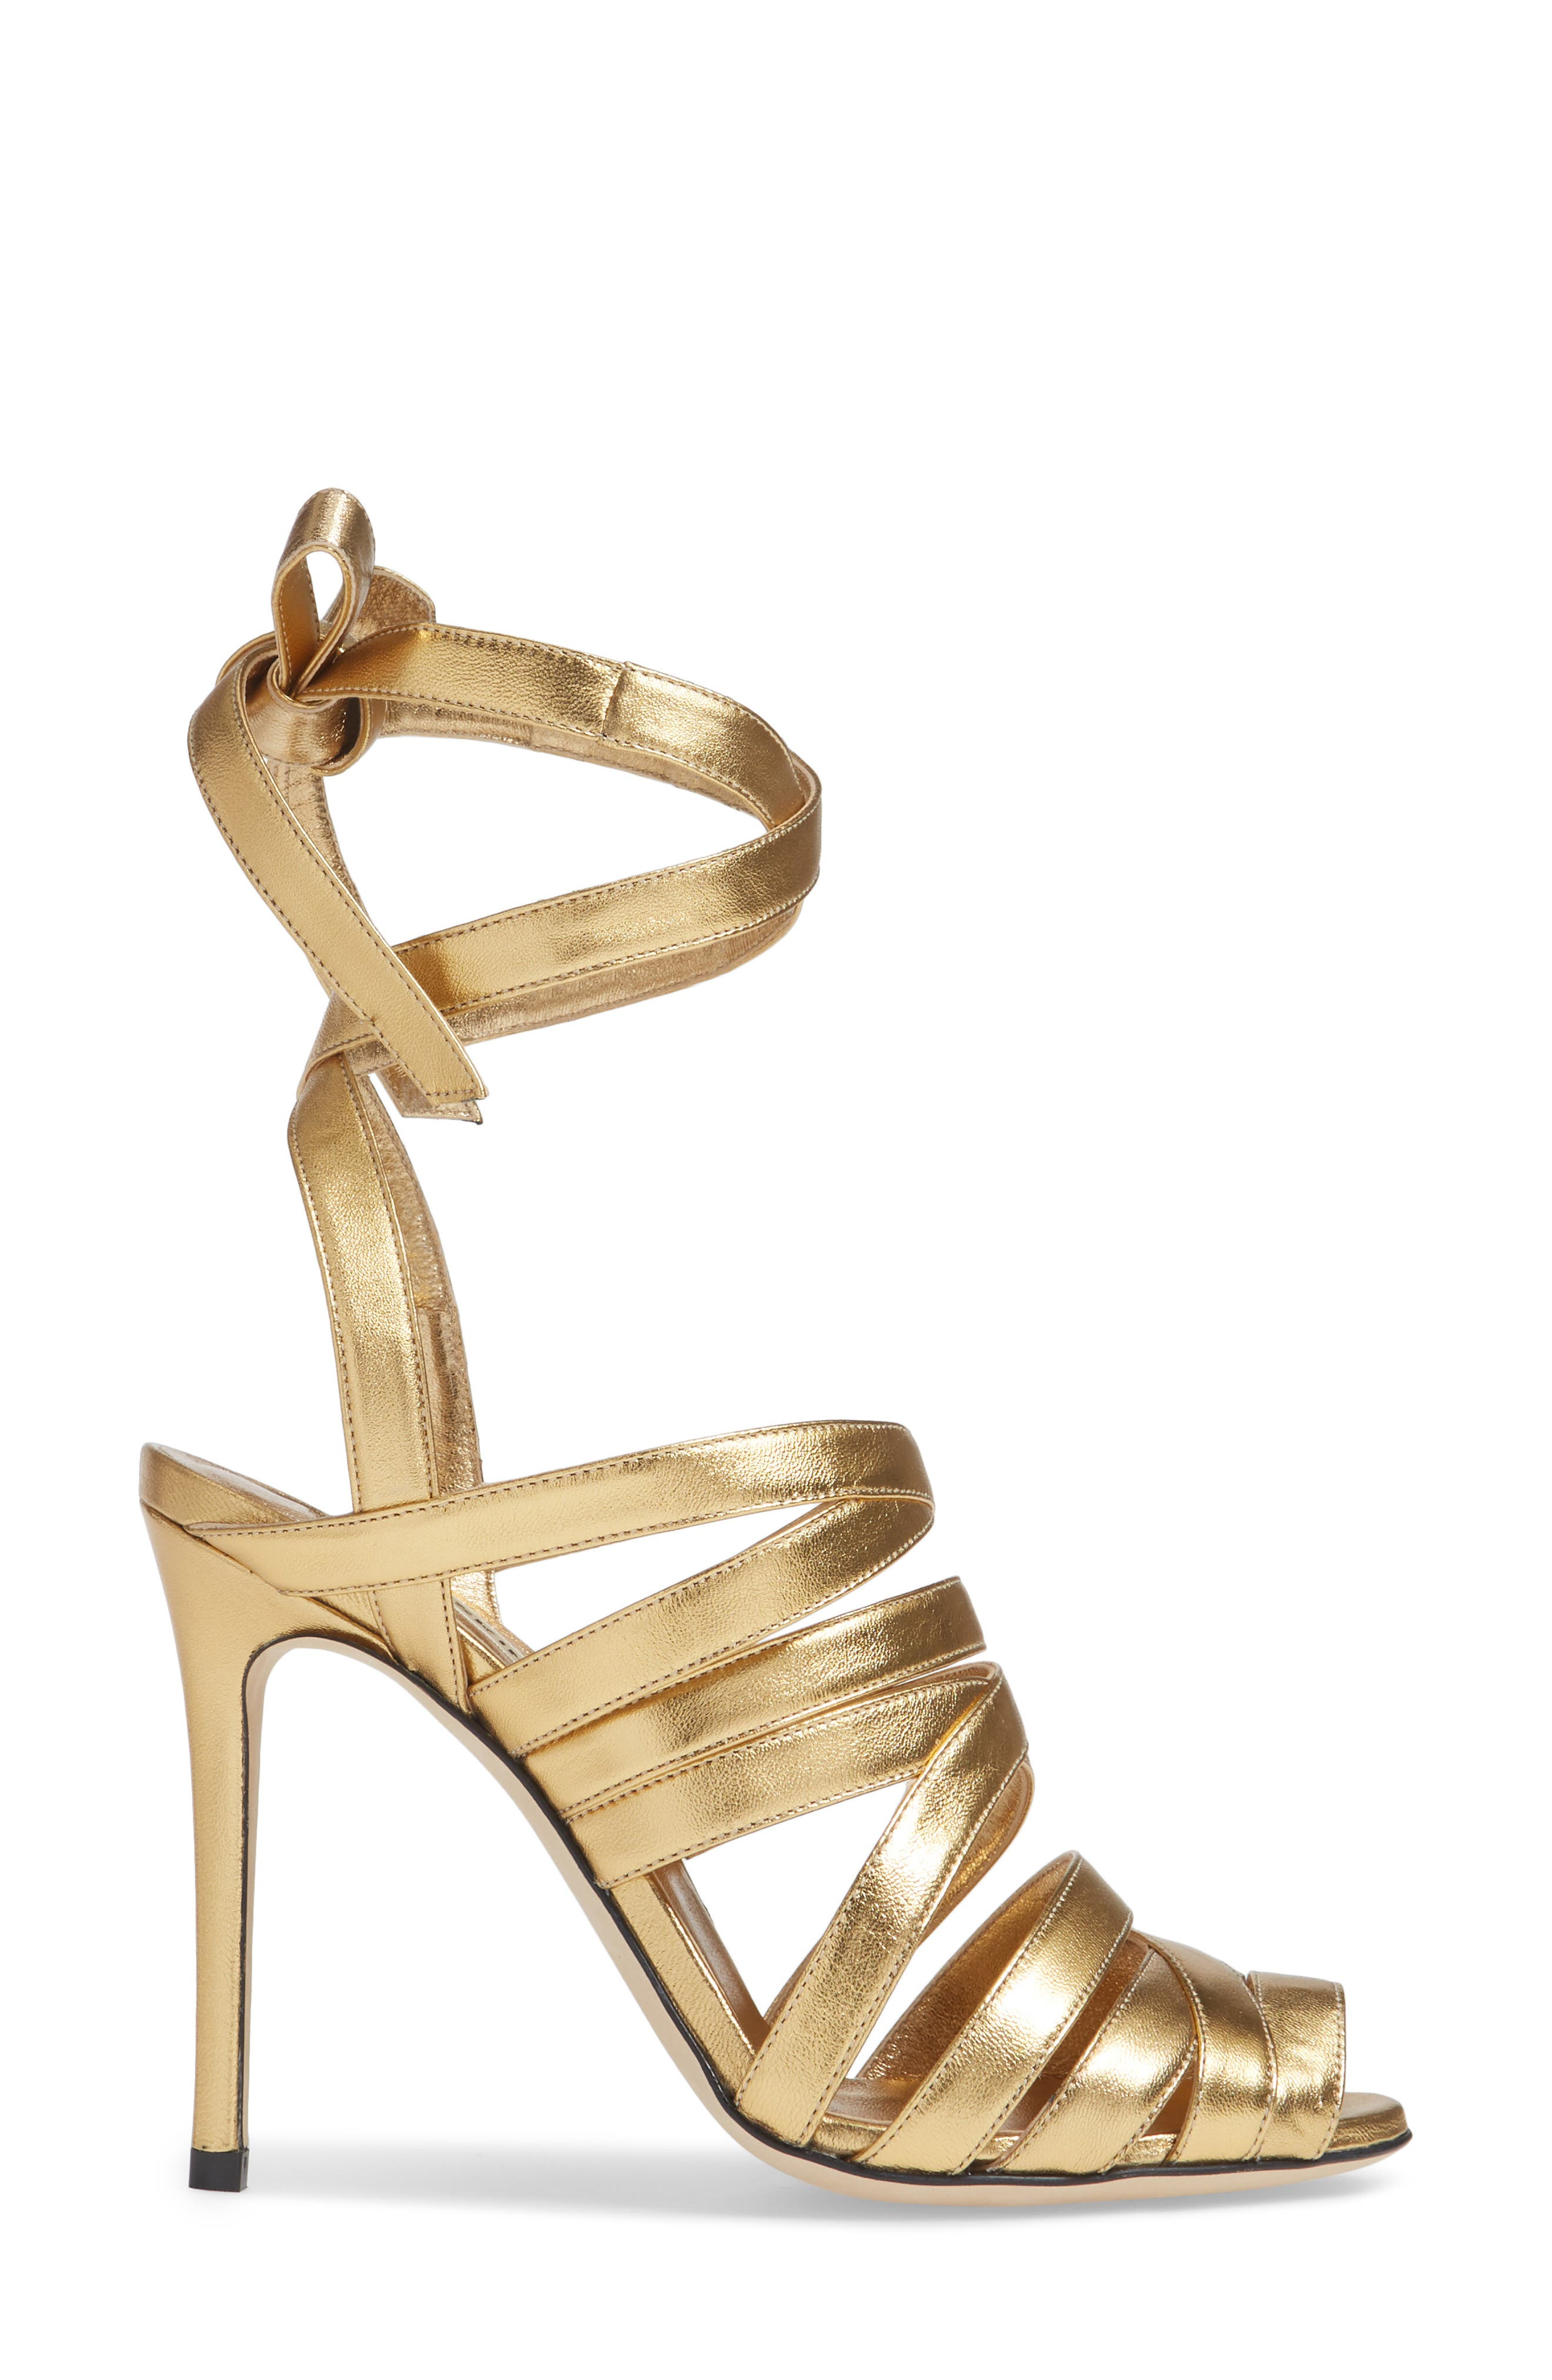 Nadege Strappy Pump,                             Alternate thumbnail 3, color,                             GOLD LEATHER